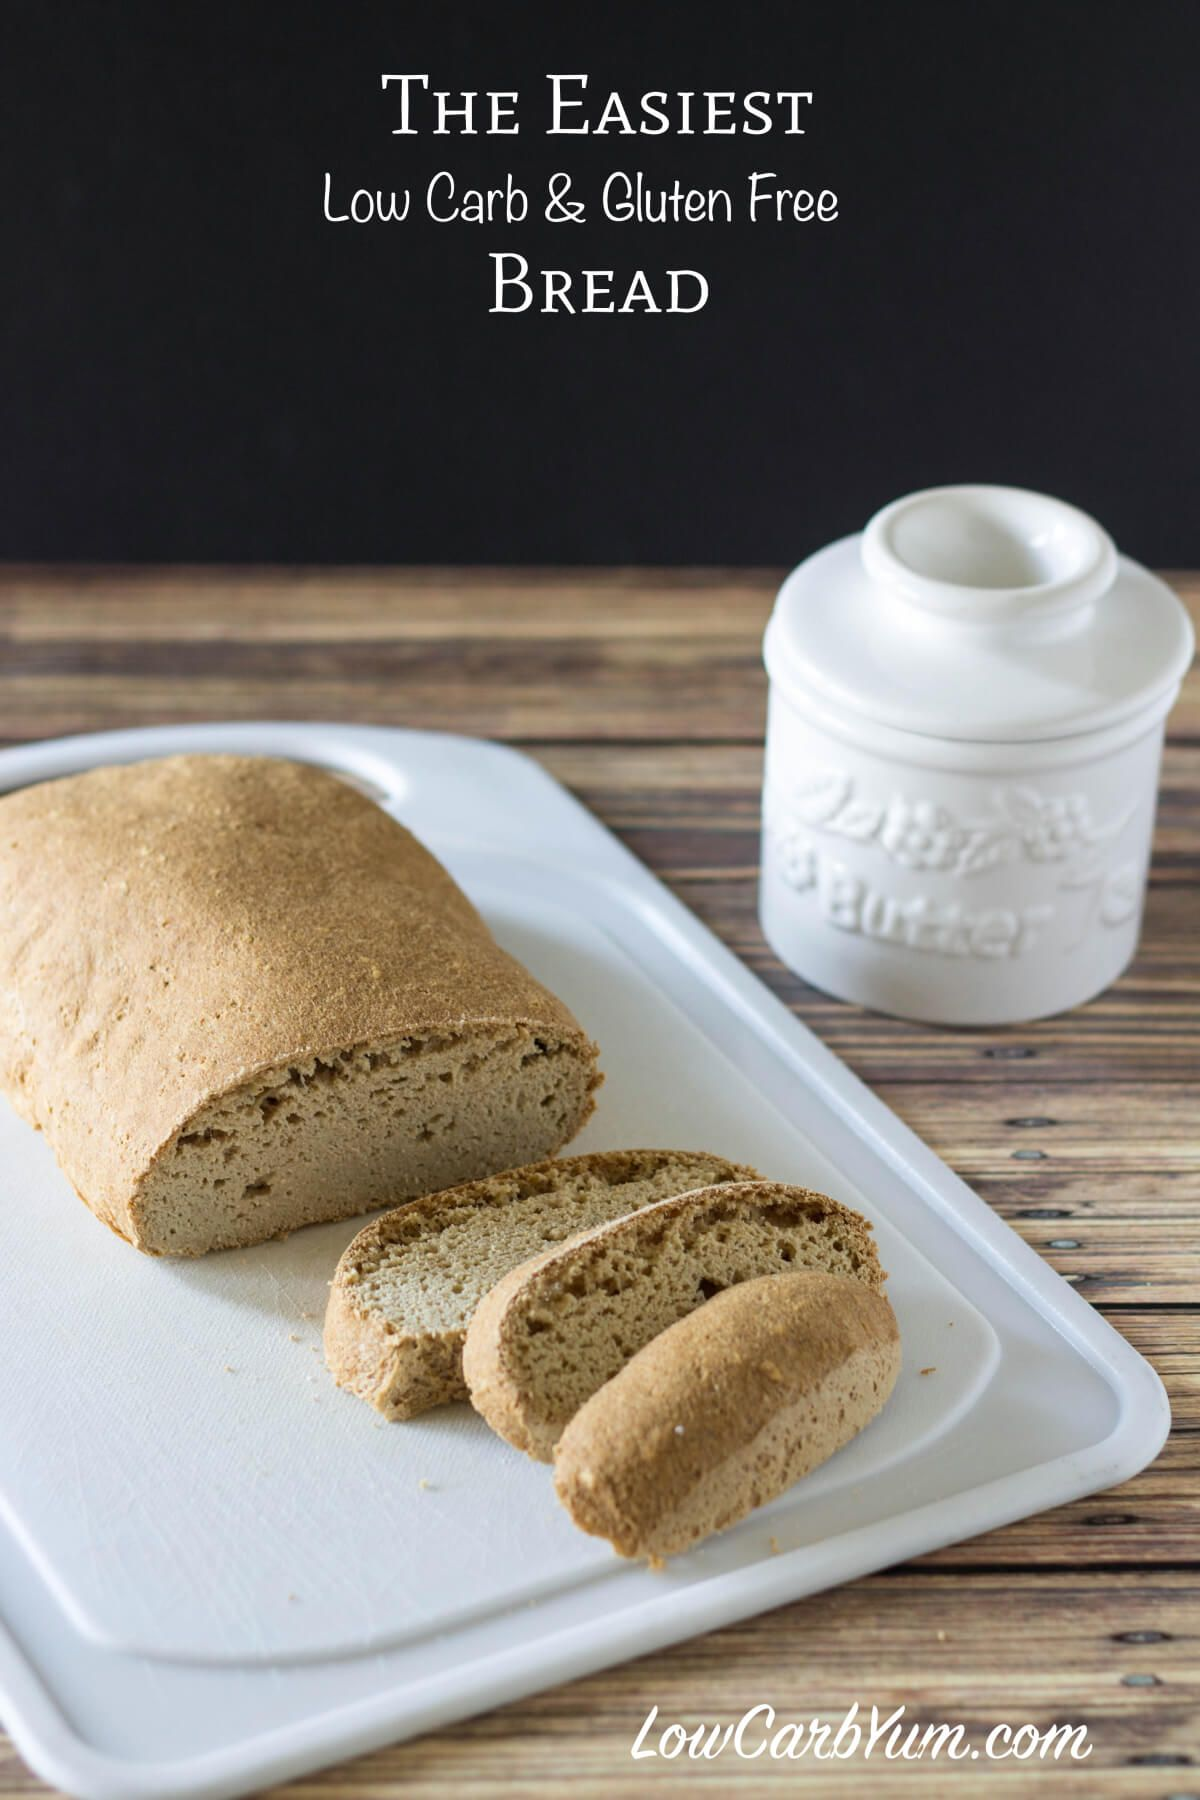 Gluten Free Low Carb Sukrin Bread Mix Low Carb Bread Low Carb Yum Low Carb Gluten Free Bread